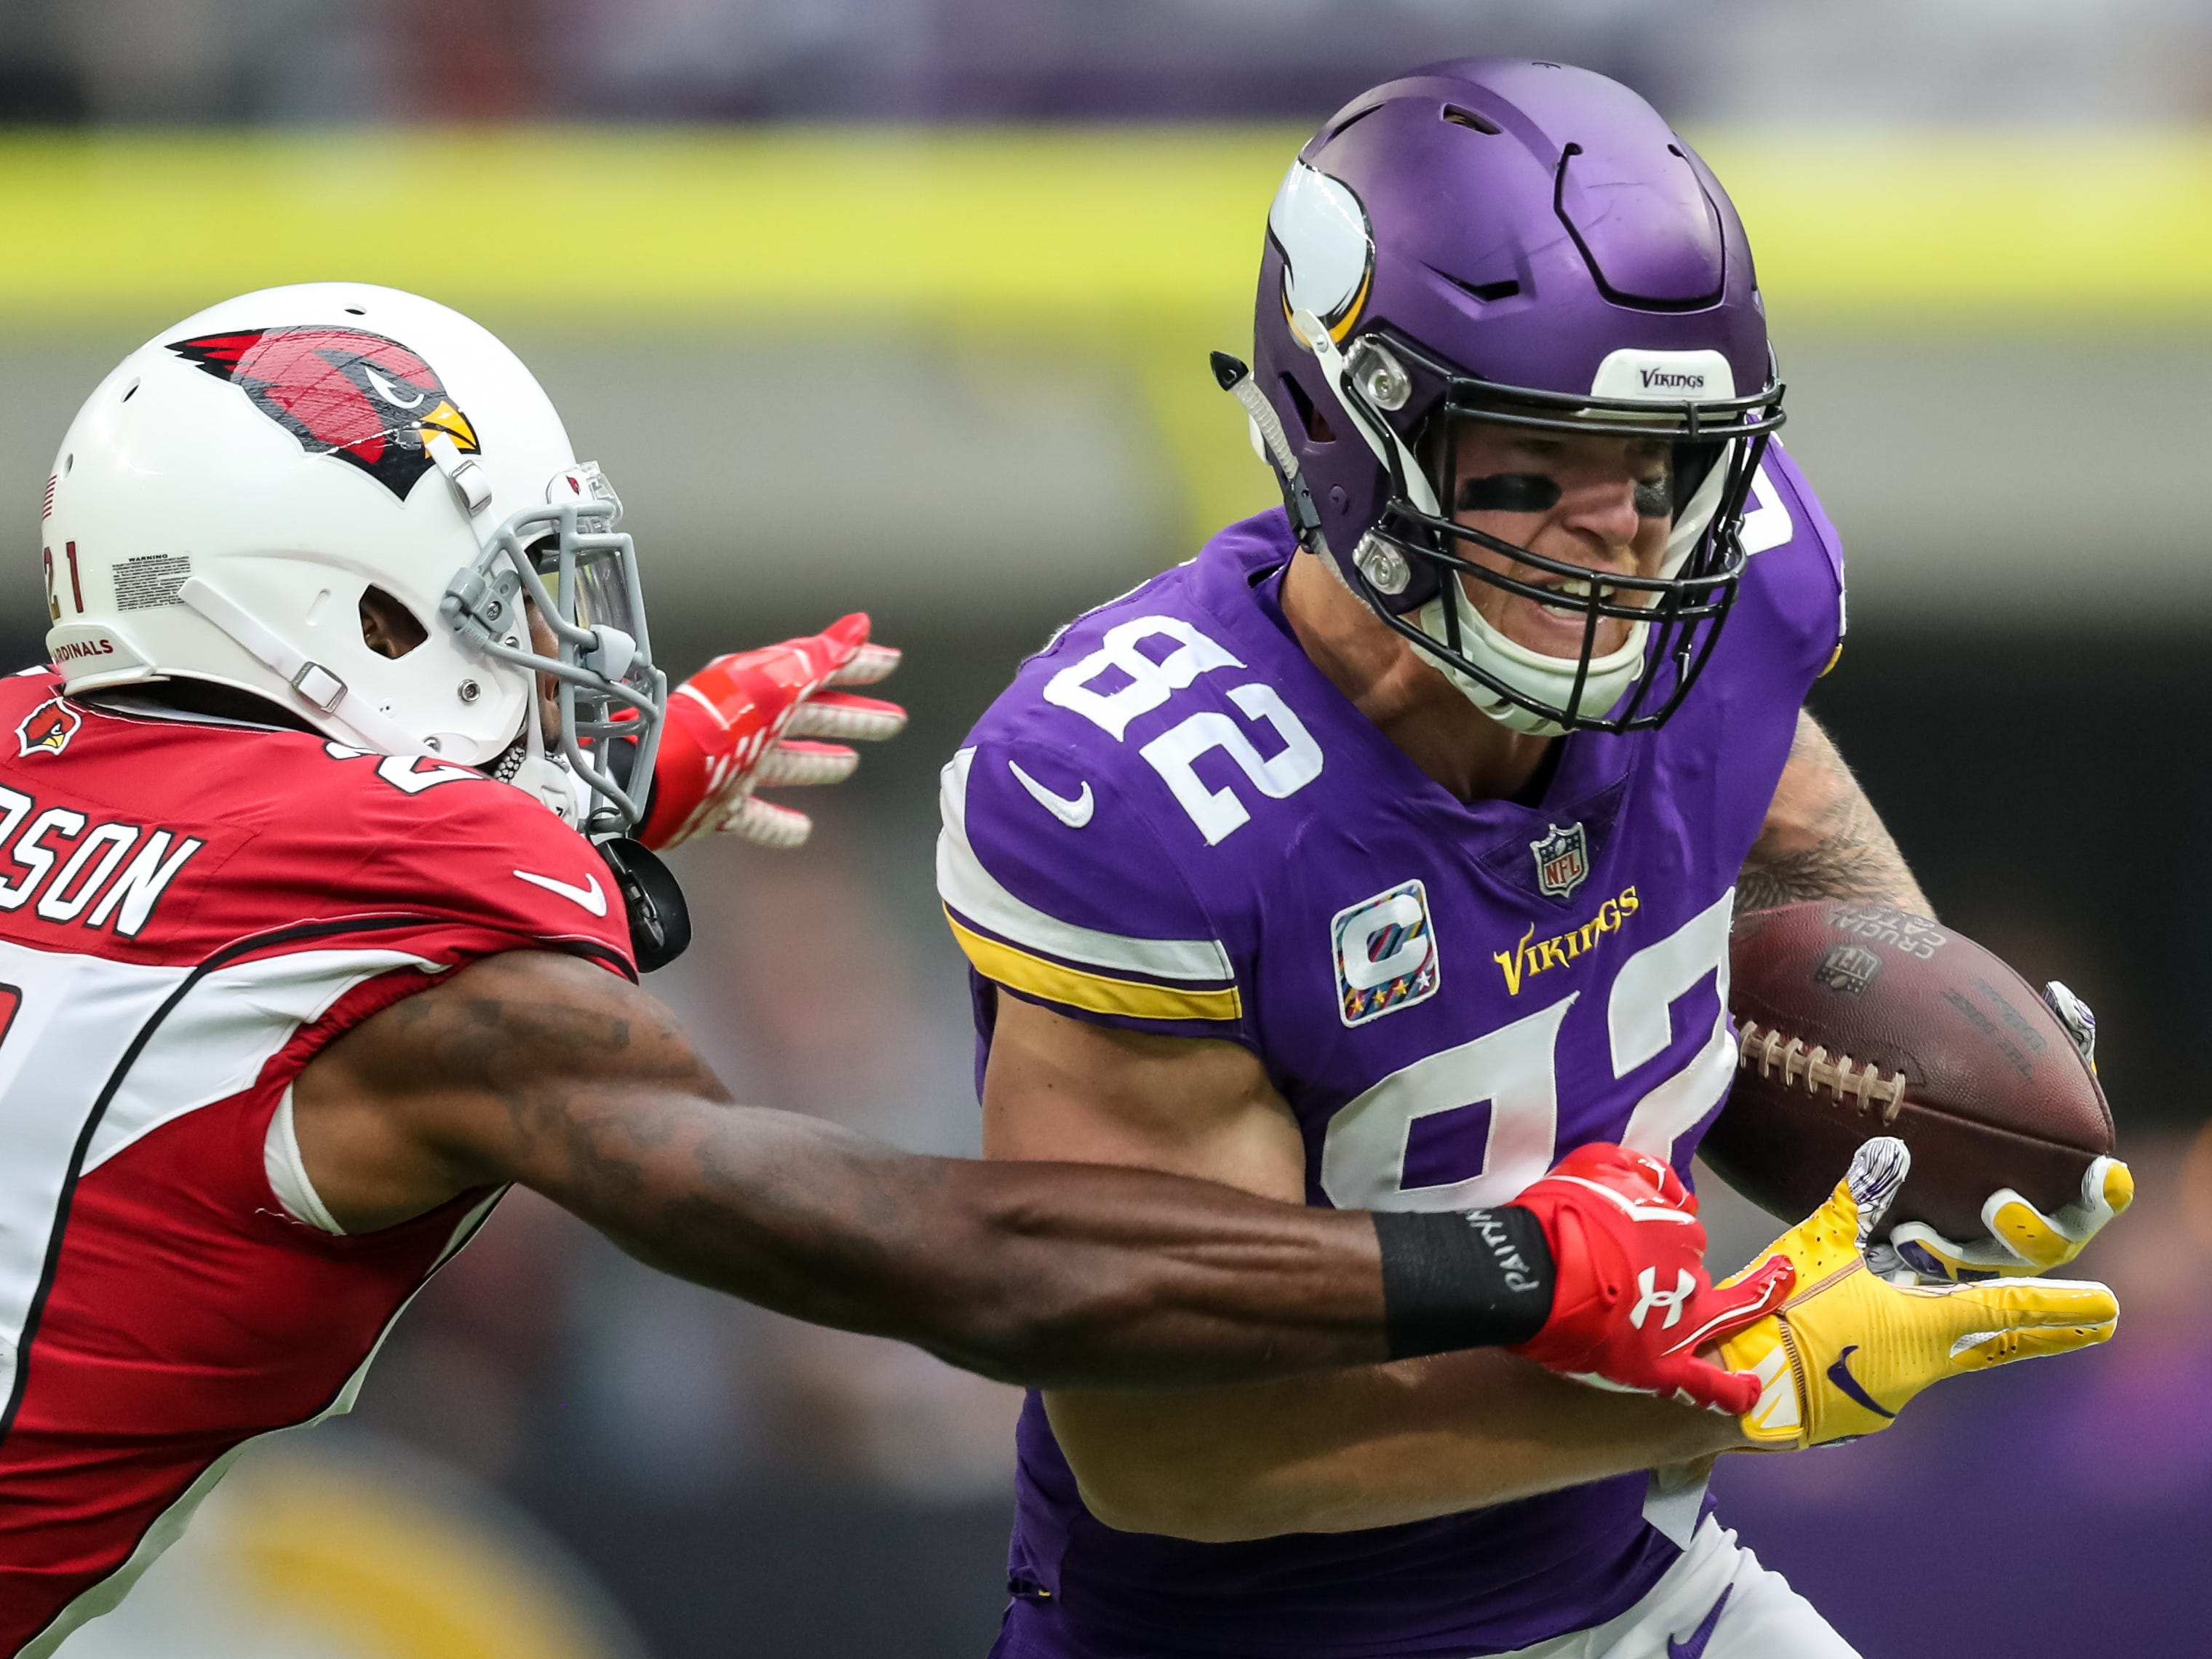 Oct 14, 2018; Minneapolis, MN, USA; Minnesota Vikings tight end Kyle Rudolph (82) is tackled by Arizona Cardinals cornerback Patrick Peterson (21) during the first quarter at U.S. Bank Stadium. Mandatory Credit: Brace Hemmelgarn-USA TODAY Sports